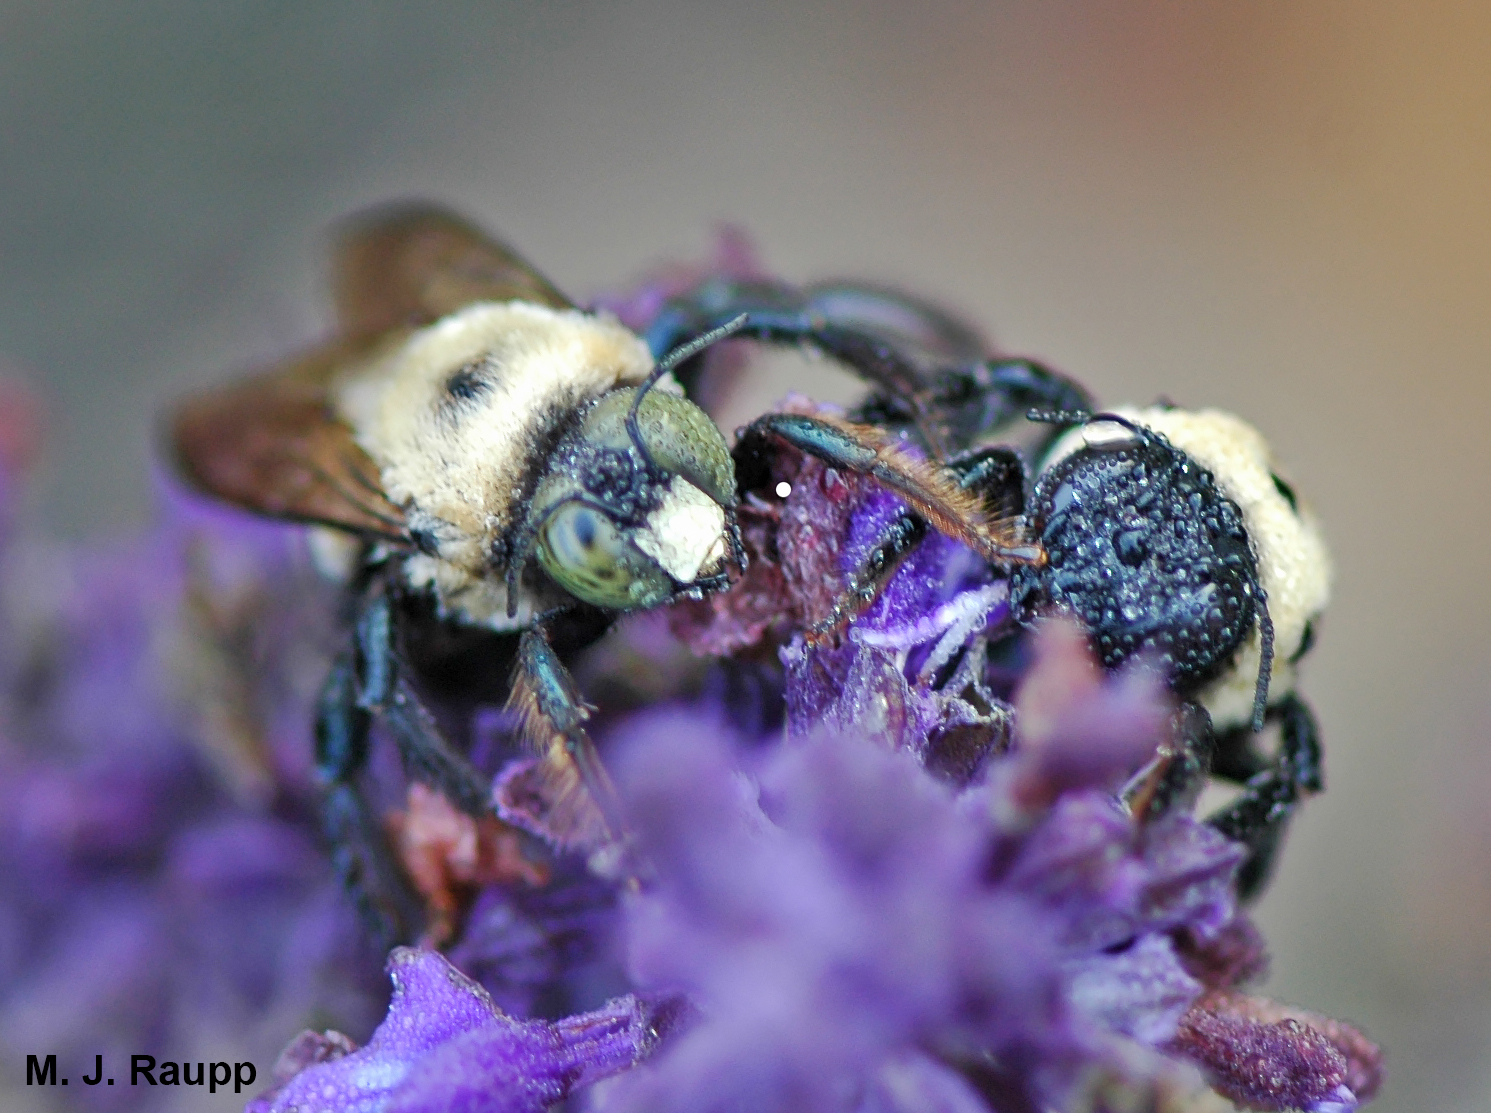 The morning dew glistens on the hairs of the yellow-faced male carpenter bee on the left and on the black-faced female carpenter bee on the right.